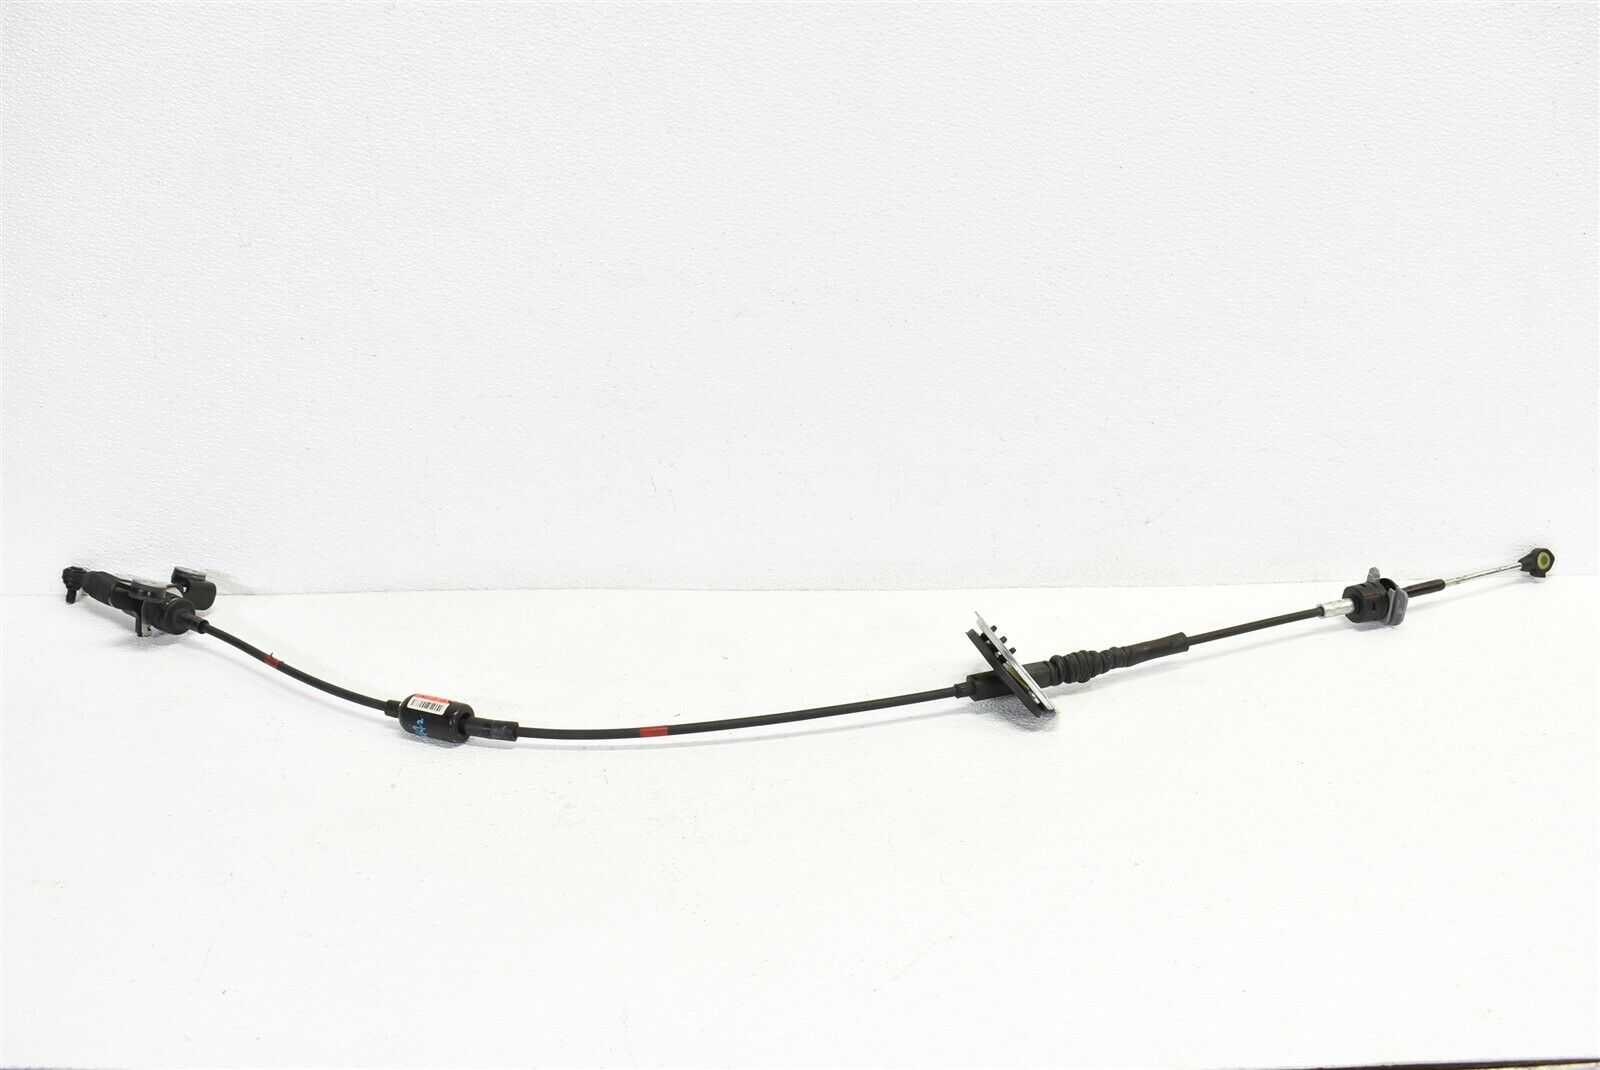 Hyundai Veloster Turbo Automatic Shifter Cable